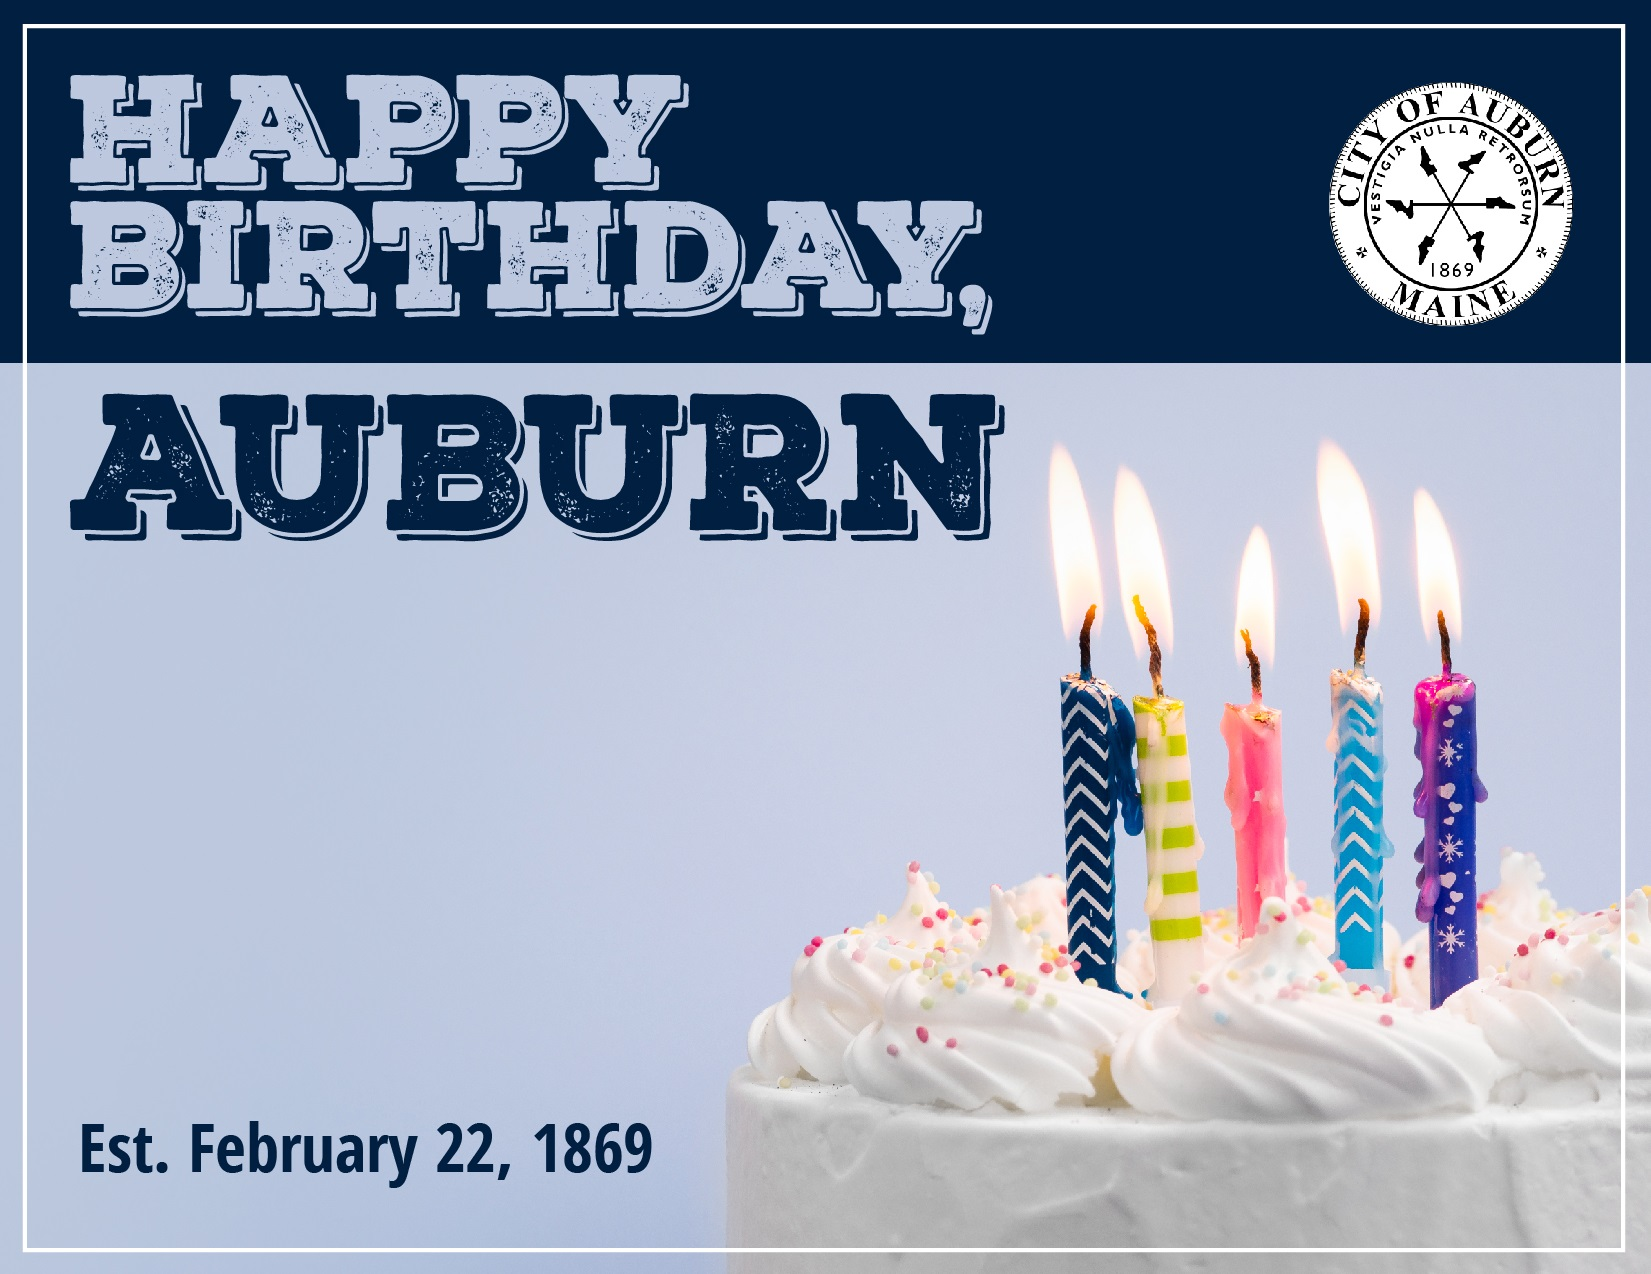 Happy Birthday, Auburn!